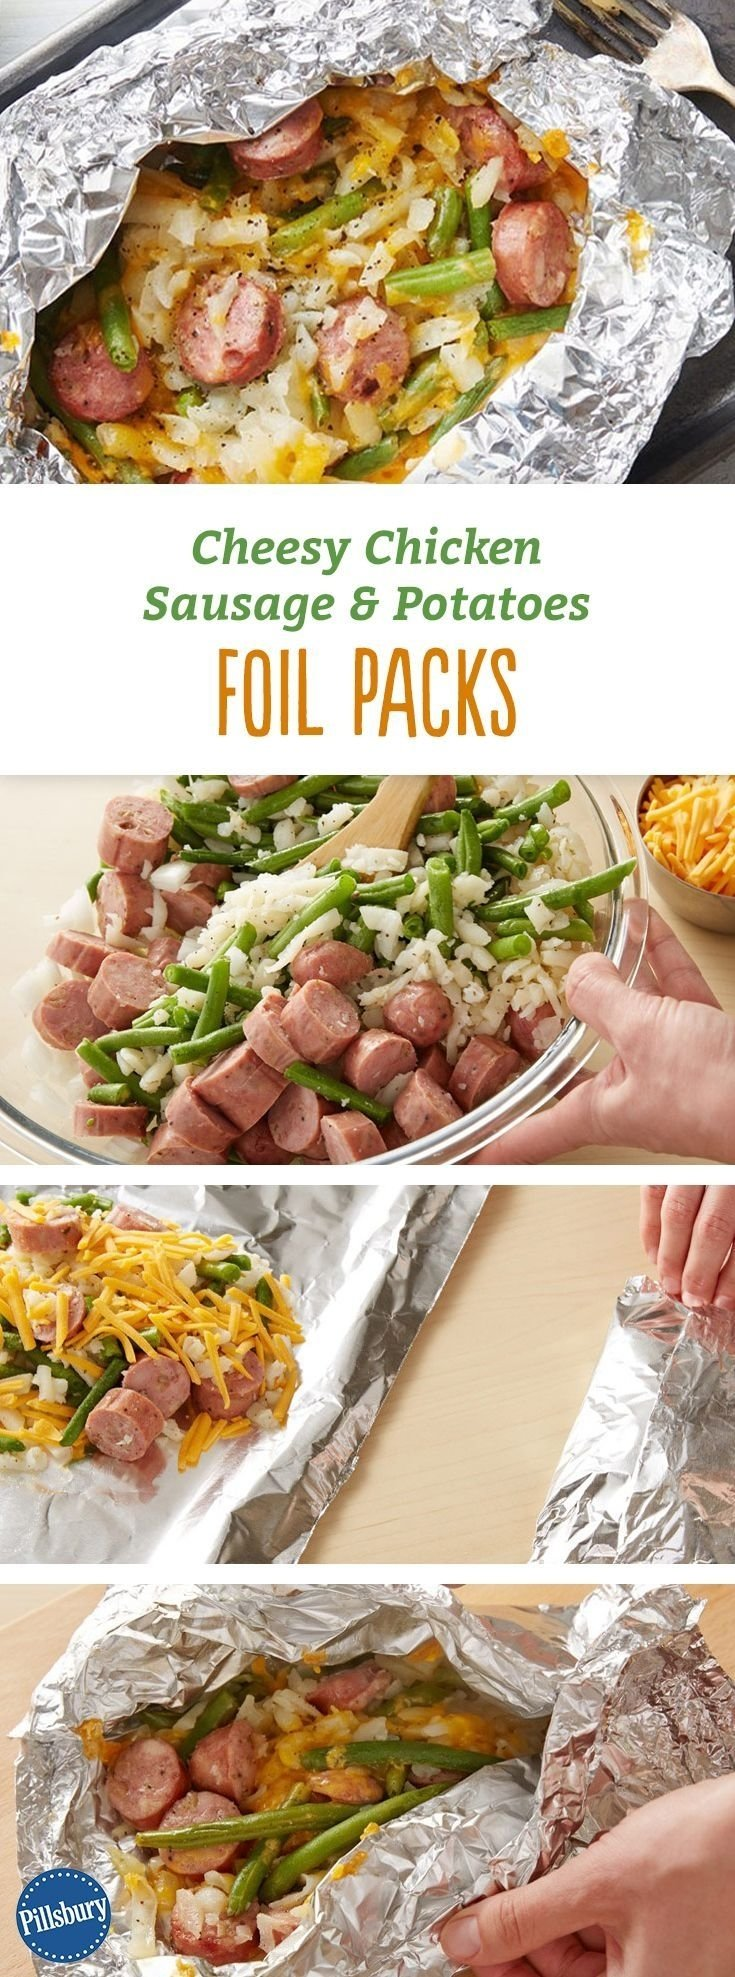 10 Stylish Chicken Apple Sausage Recipe Ideas cheesy chicken sausage and potatoes foil packs recipe sausage